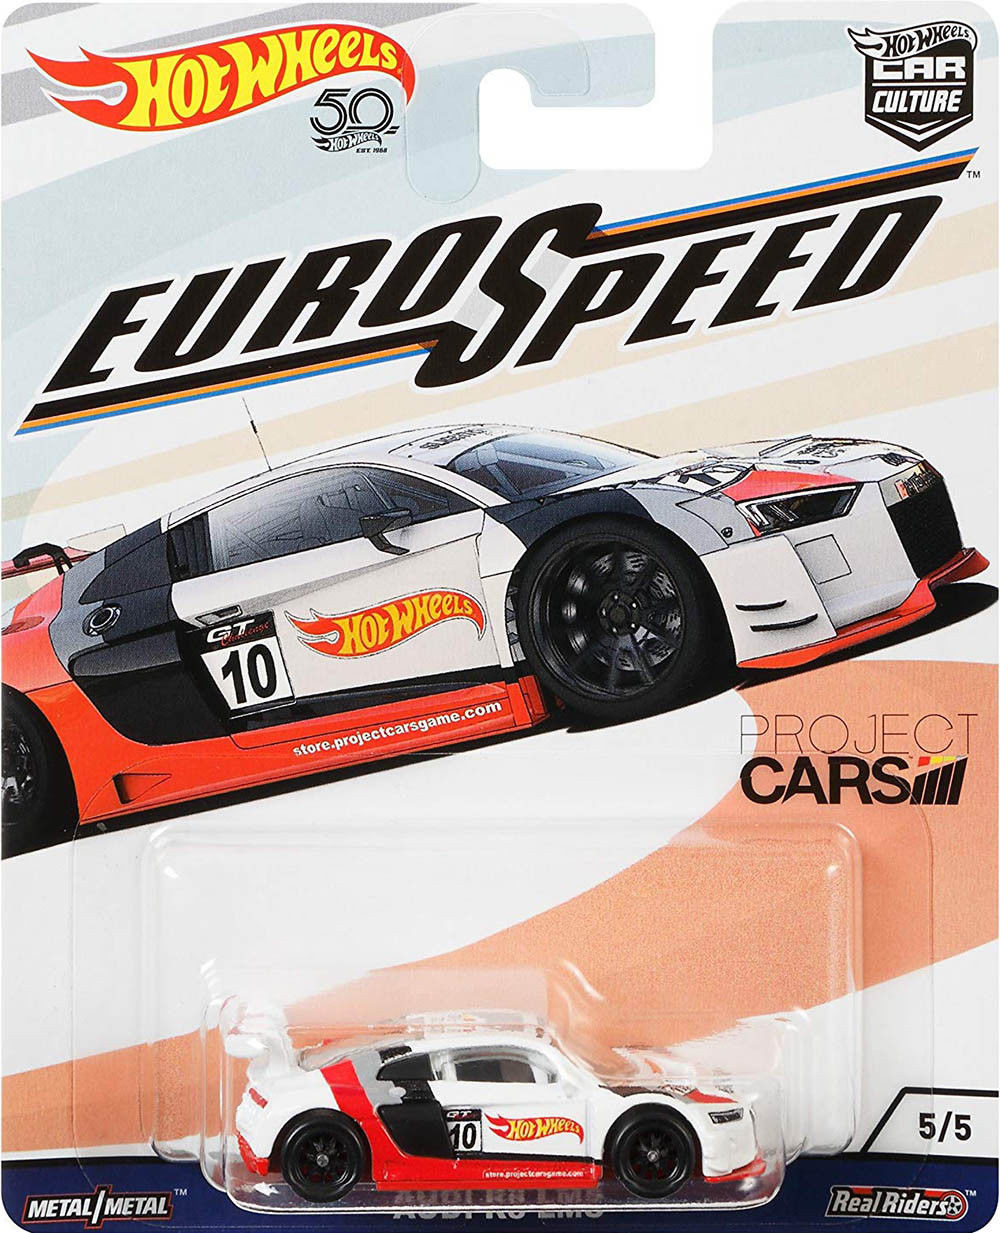 Hot Wheels Audi R8 Lms Euro Speed Car Culture